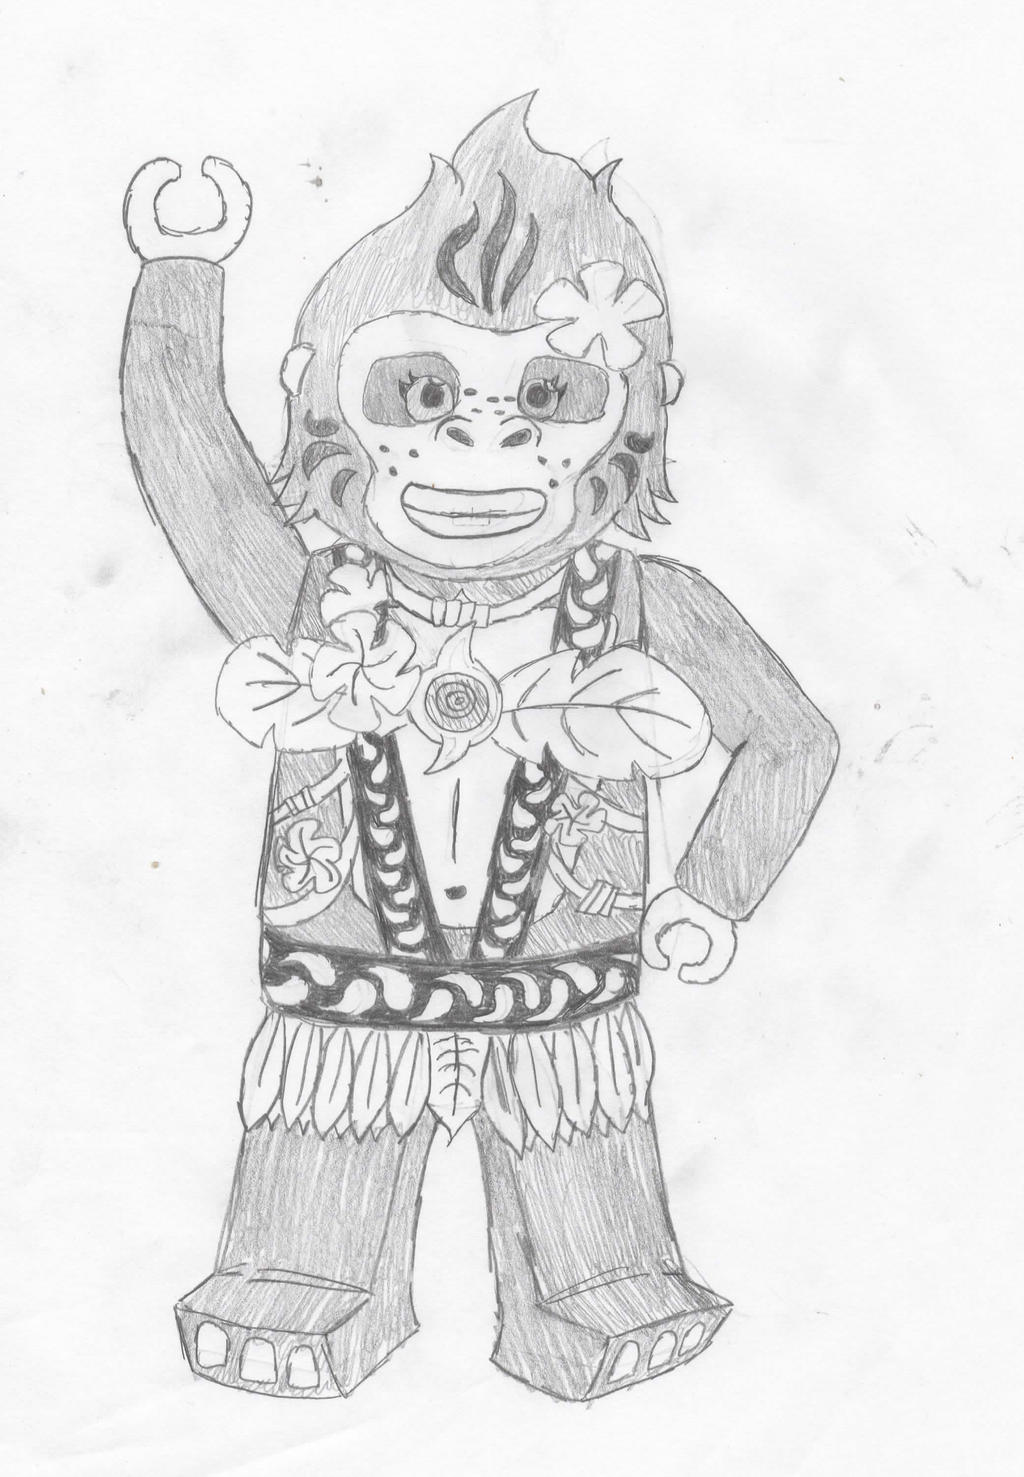 Emejing Lego Chima Gorilla Coloring Pages Ideas - New Coloring Pages ...